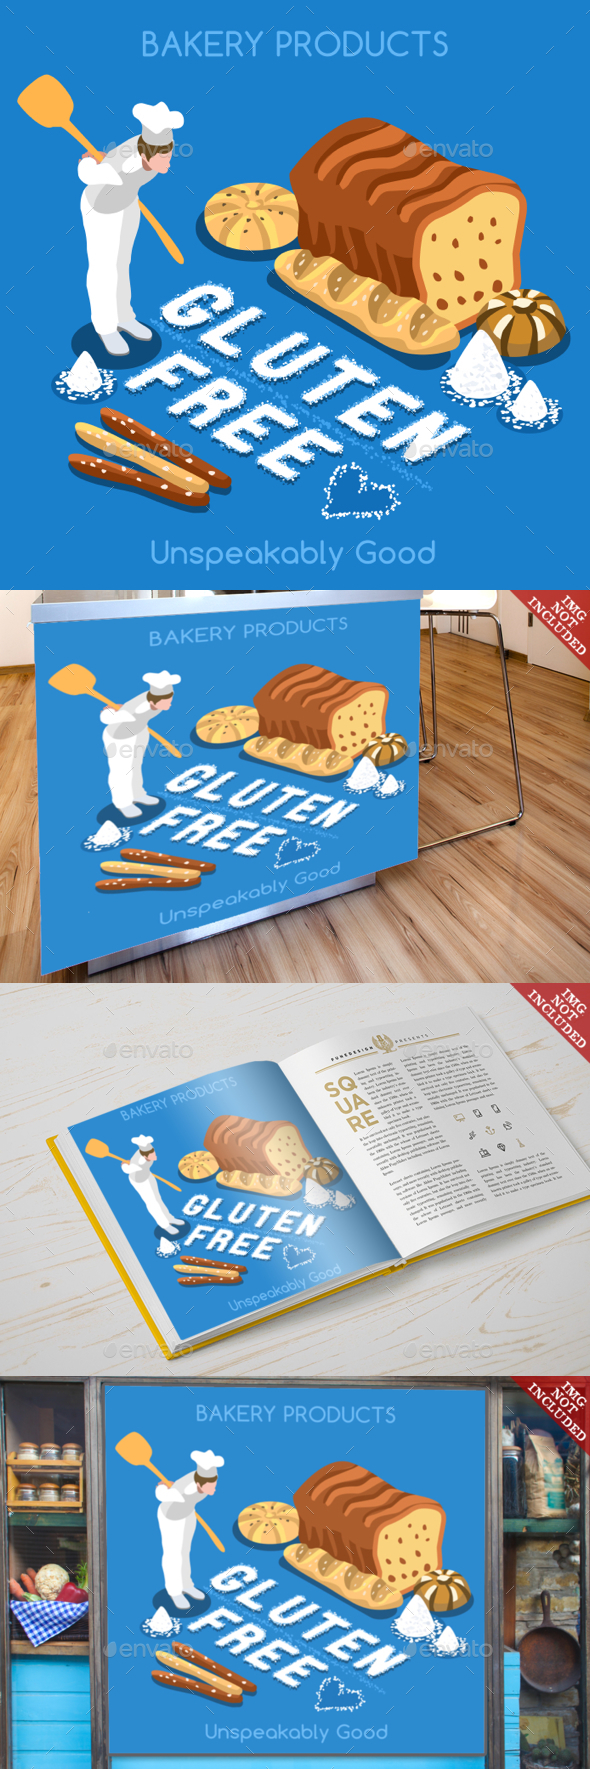 Bakery 02 Food Isometric - Food Objects